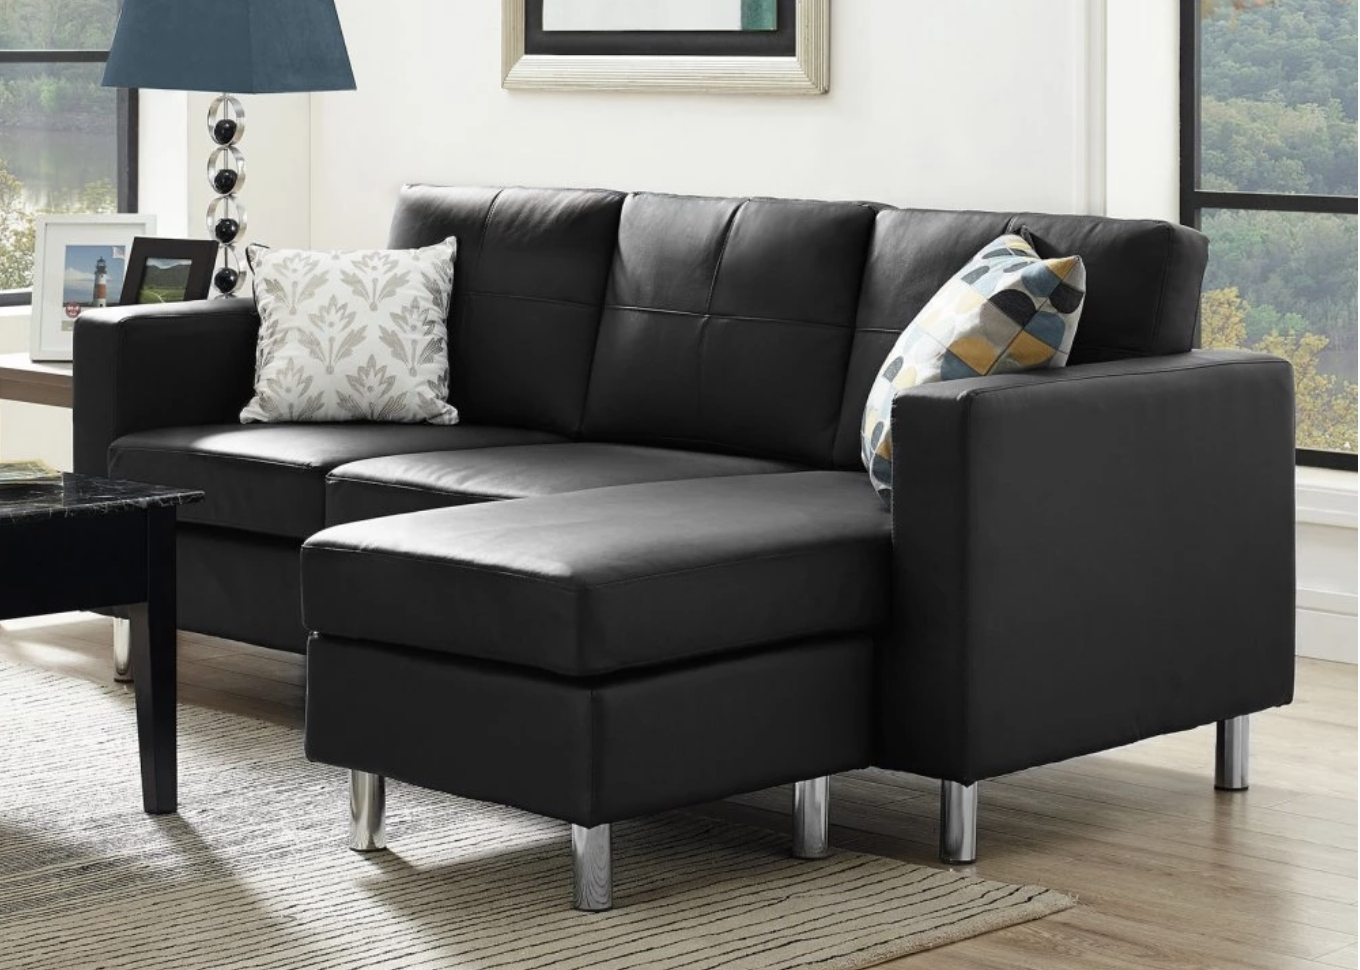 75 Modern Sectional Sofas For Small Spaces (2018) With Best And Newest Sectional Sofas For Small Rooms (Gallery 2 of 15)